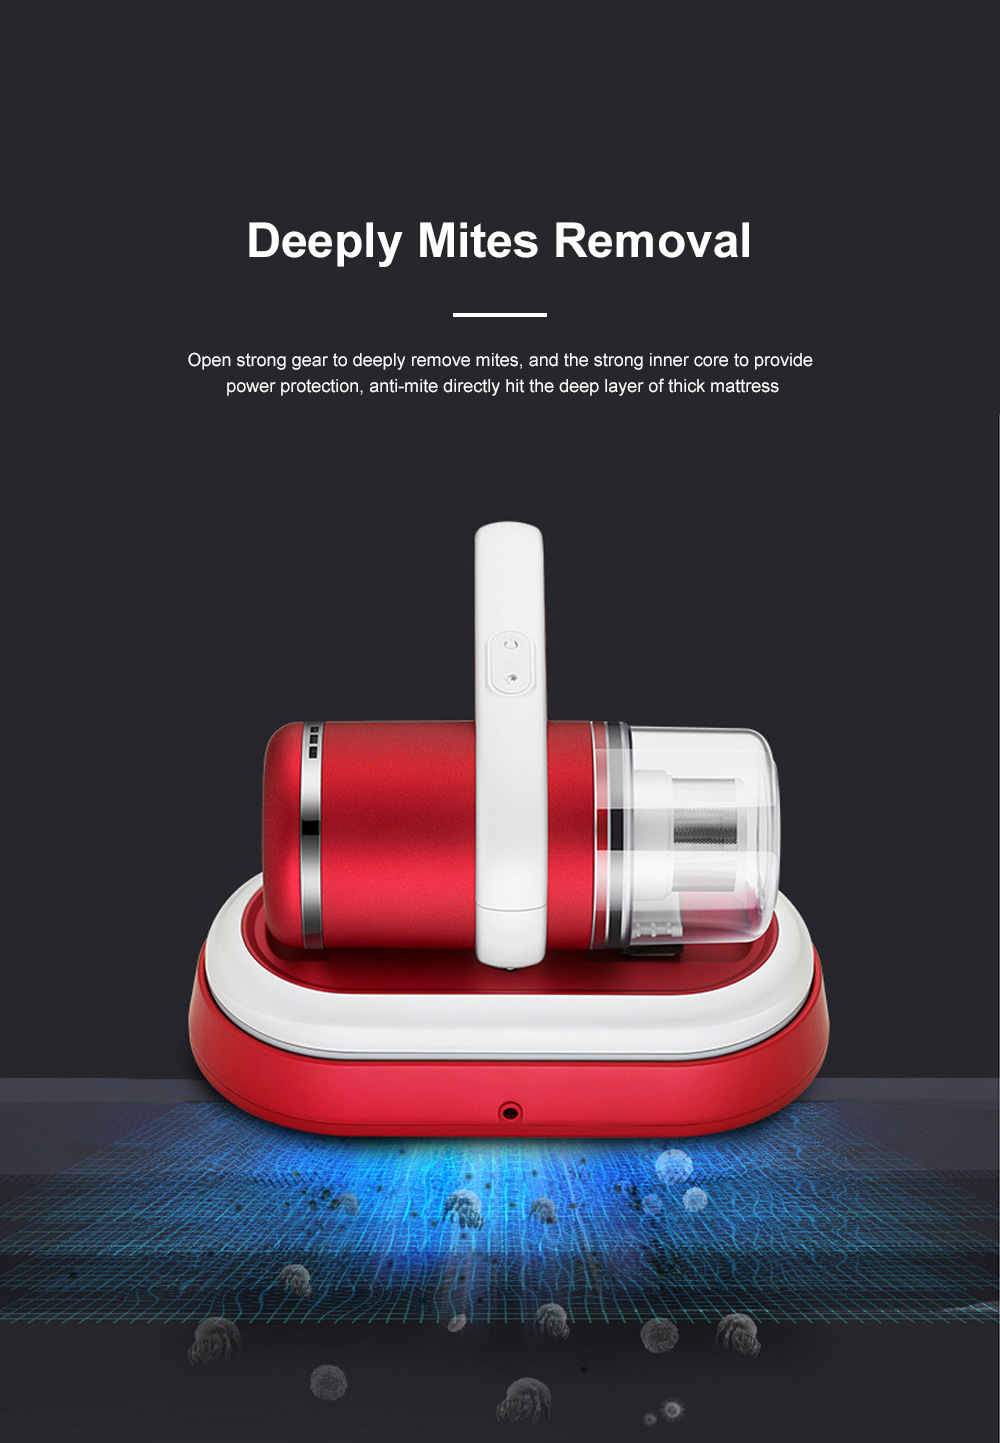 Home Use Wireless Mite Remover Handheld UV Sterilization Cleaner for Bed Bedroom Sofa Clothes Anti Dust Mite Device 1